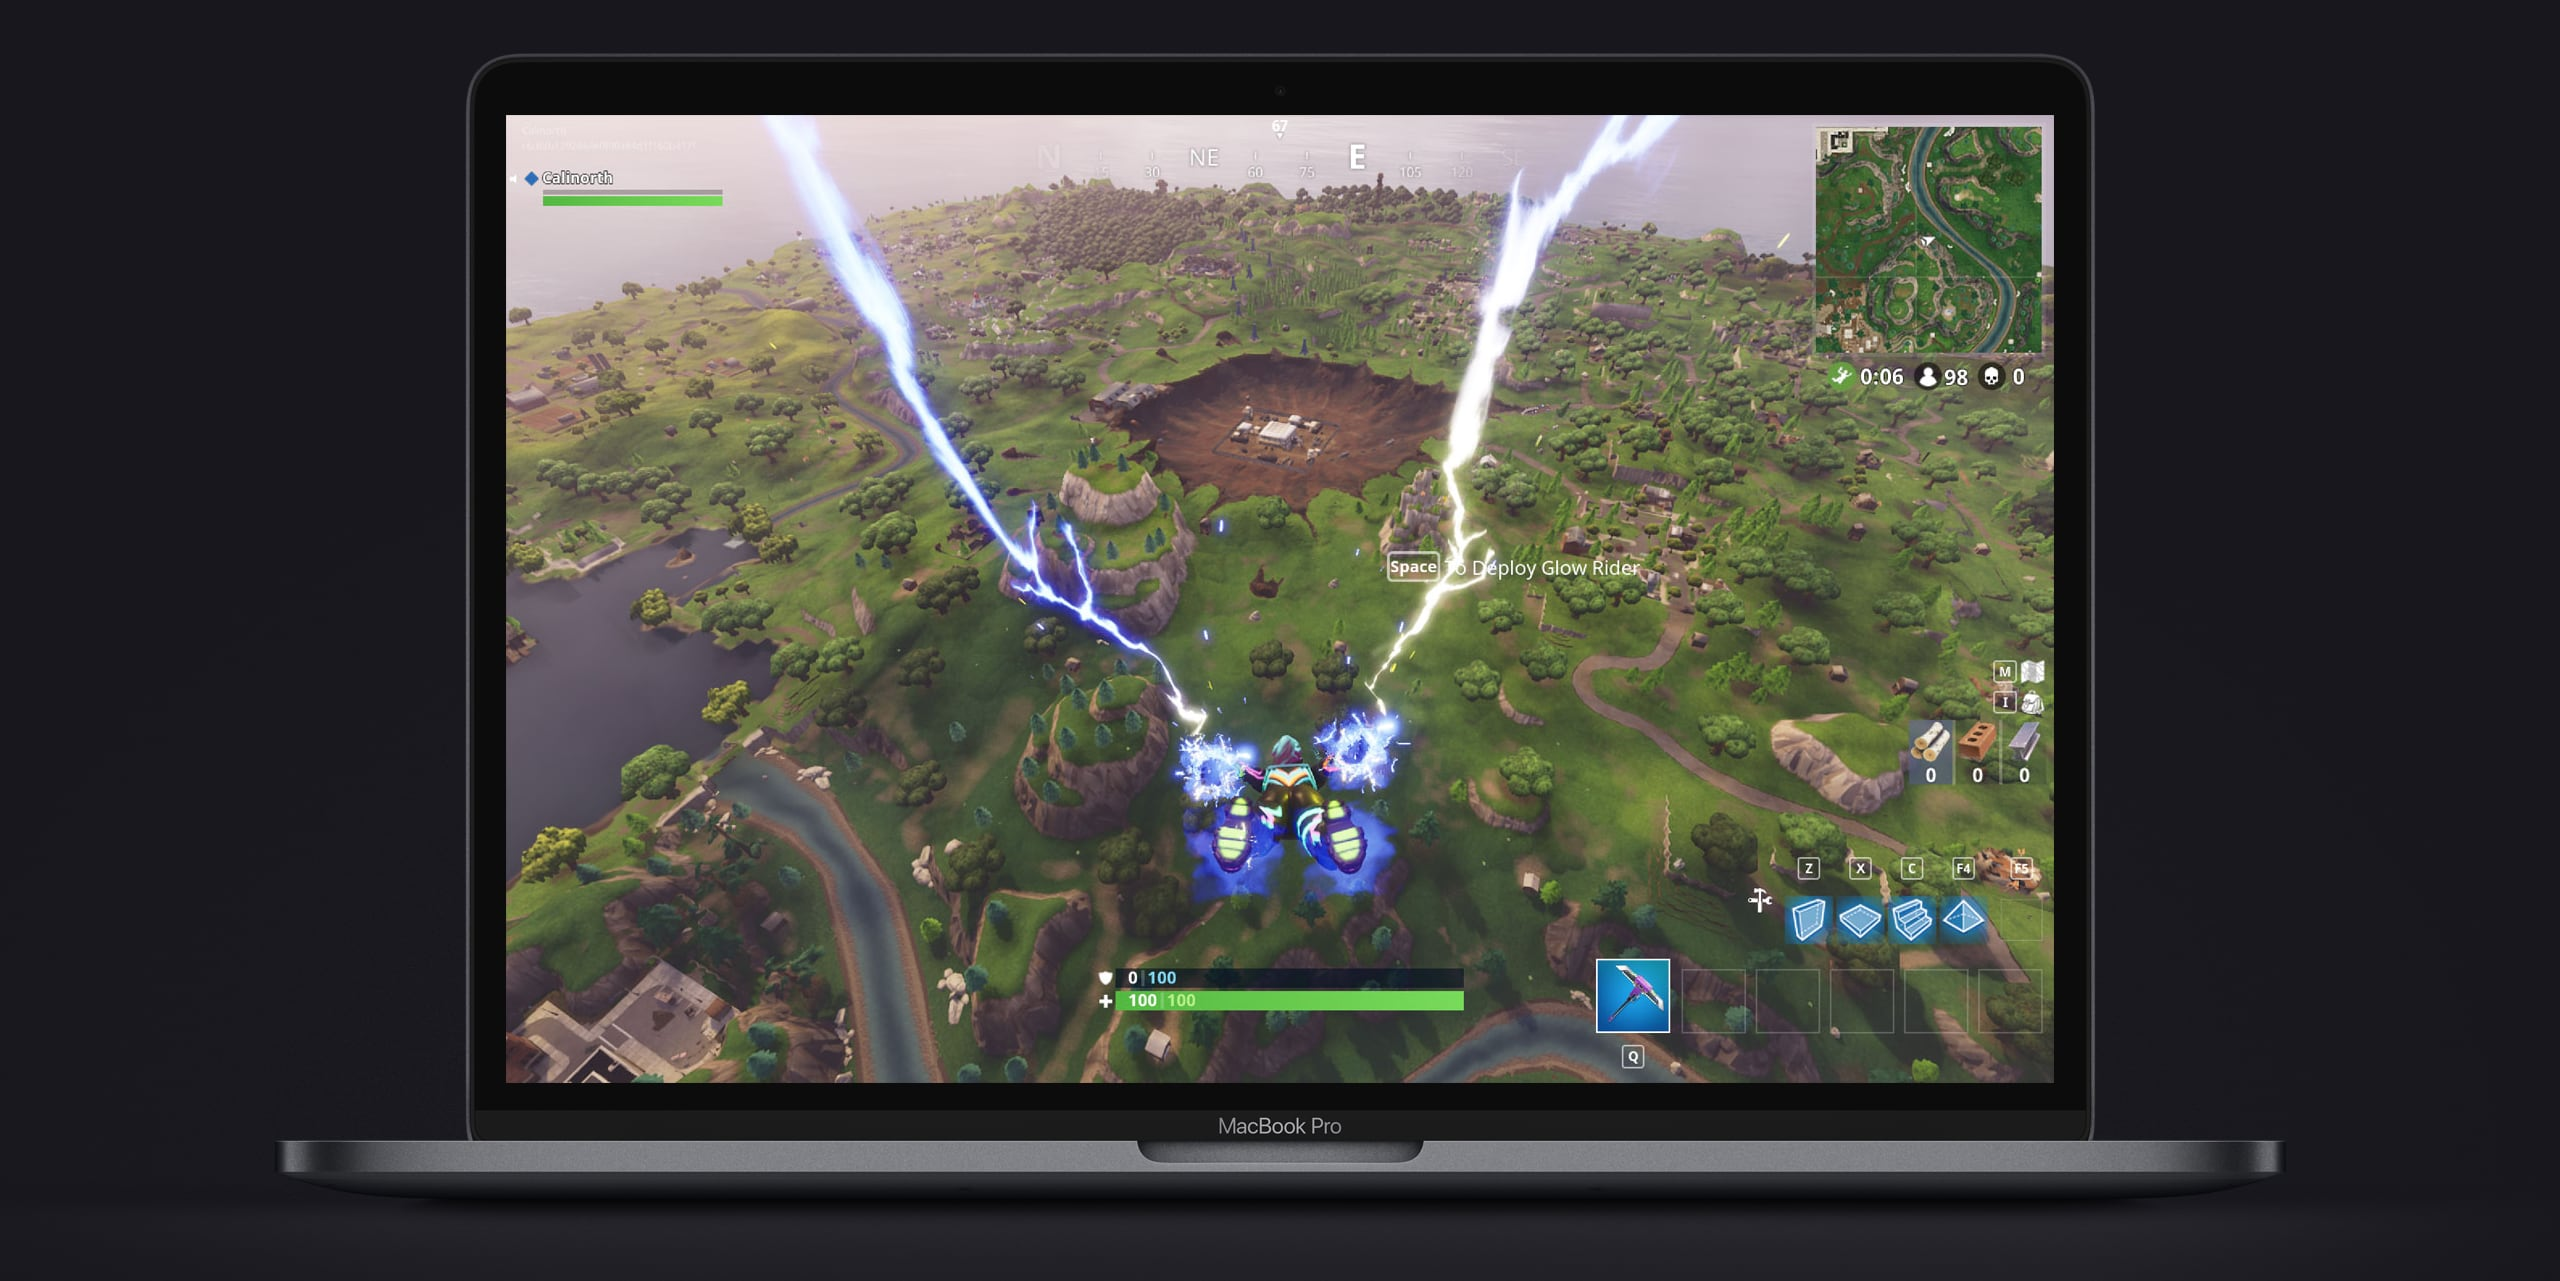 fortnite has hit over 1 billion in revenue with in app purchases